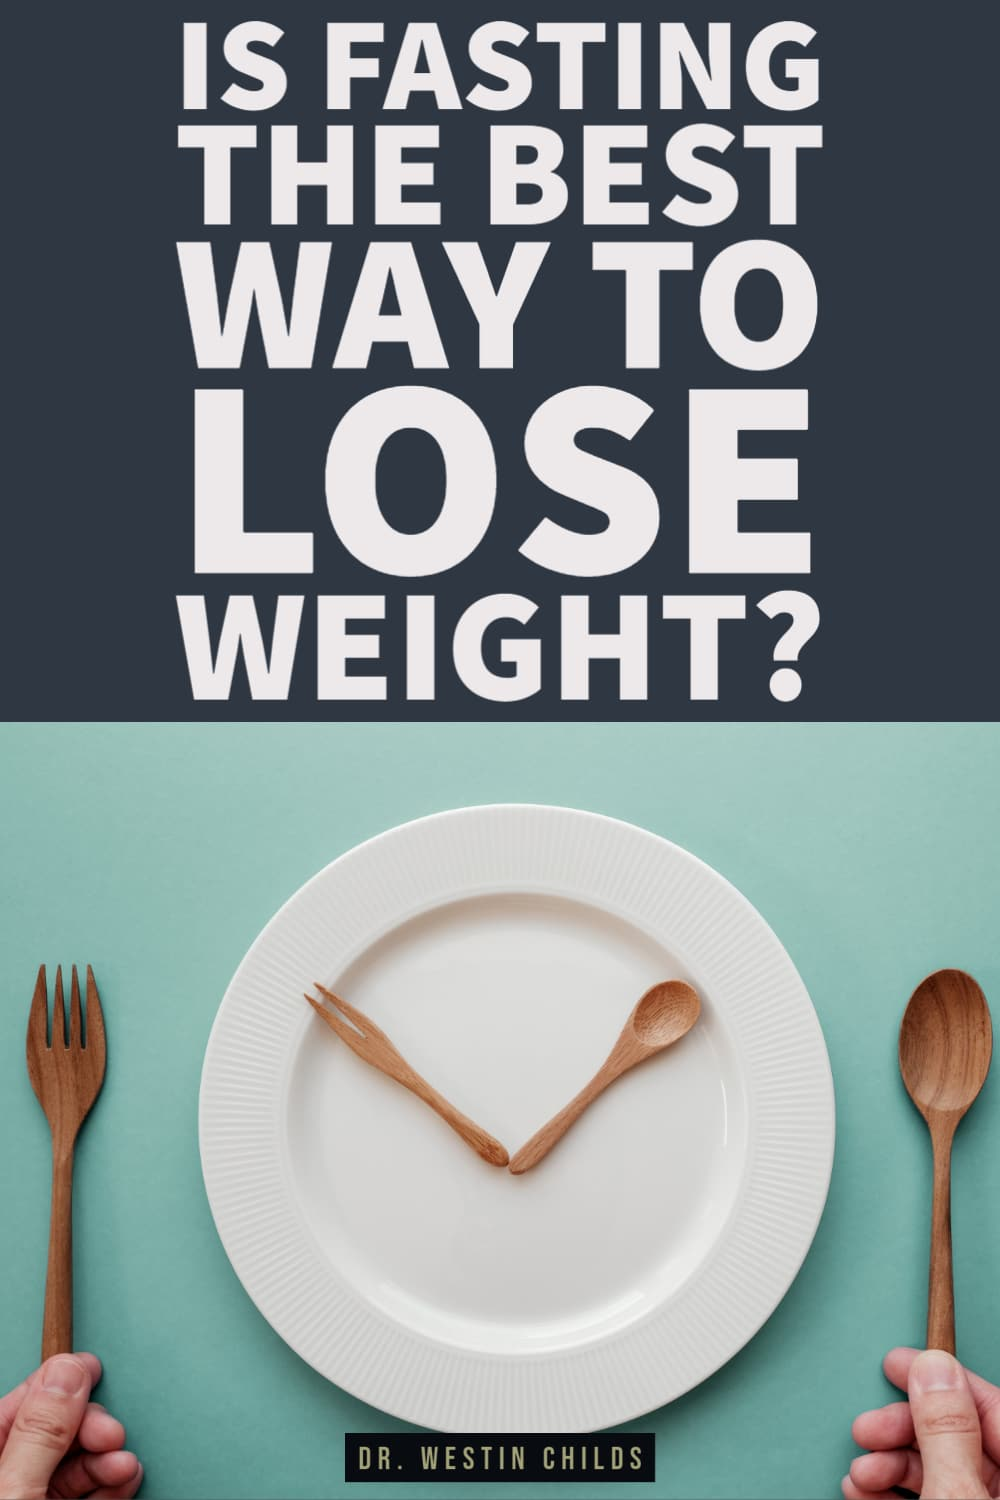 is fasting the best way to lose weight?